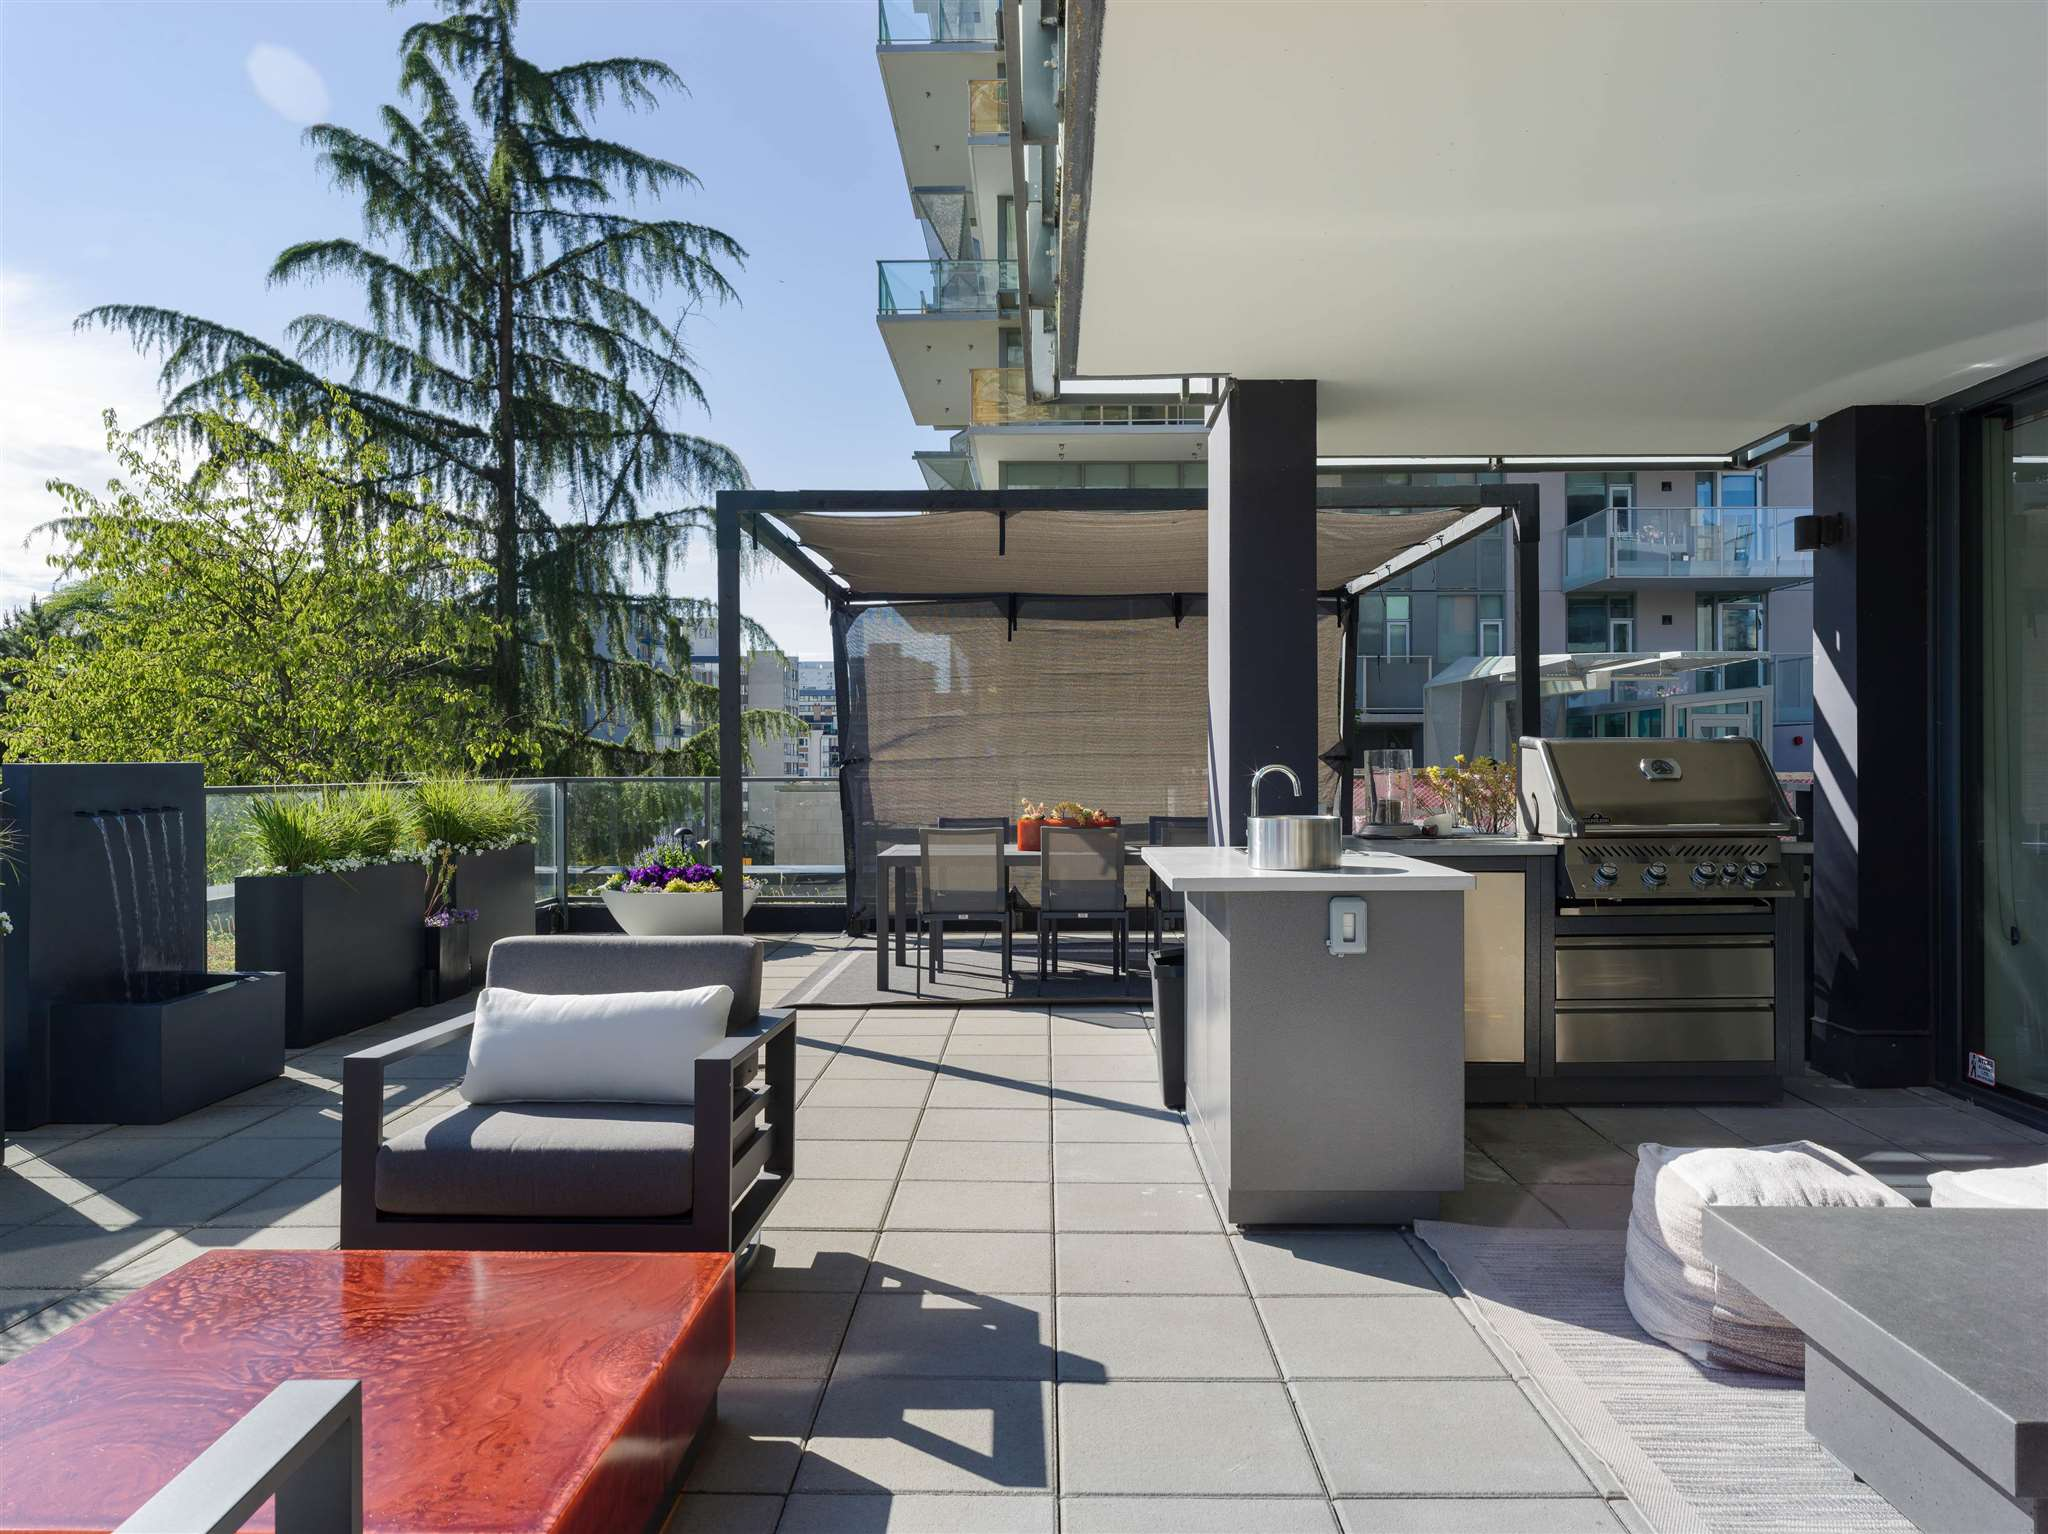 403 1171 JERVIS STREET - West End VW Apartment/Condo for sale, 2 Bedrooms (R2591528) - #2